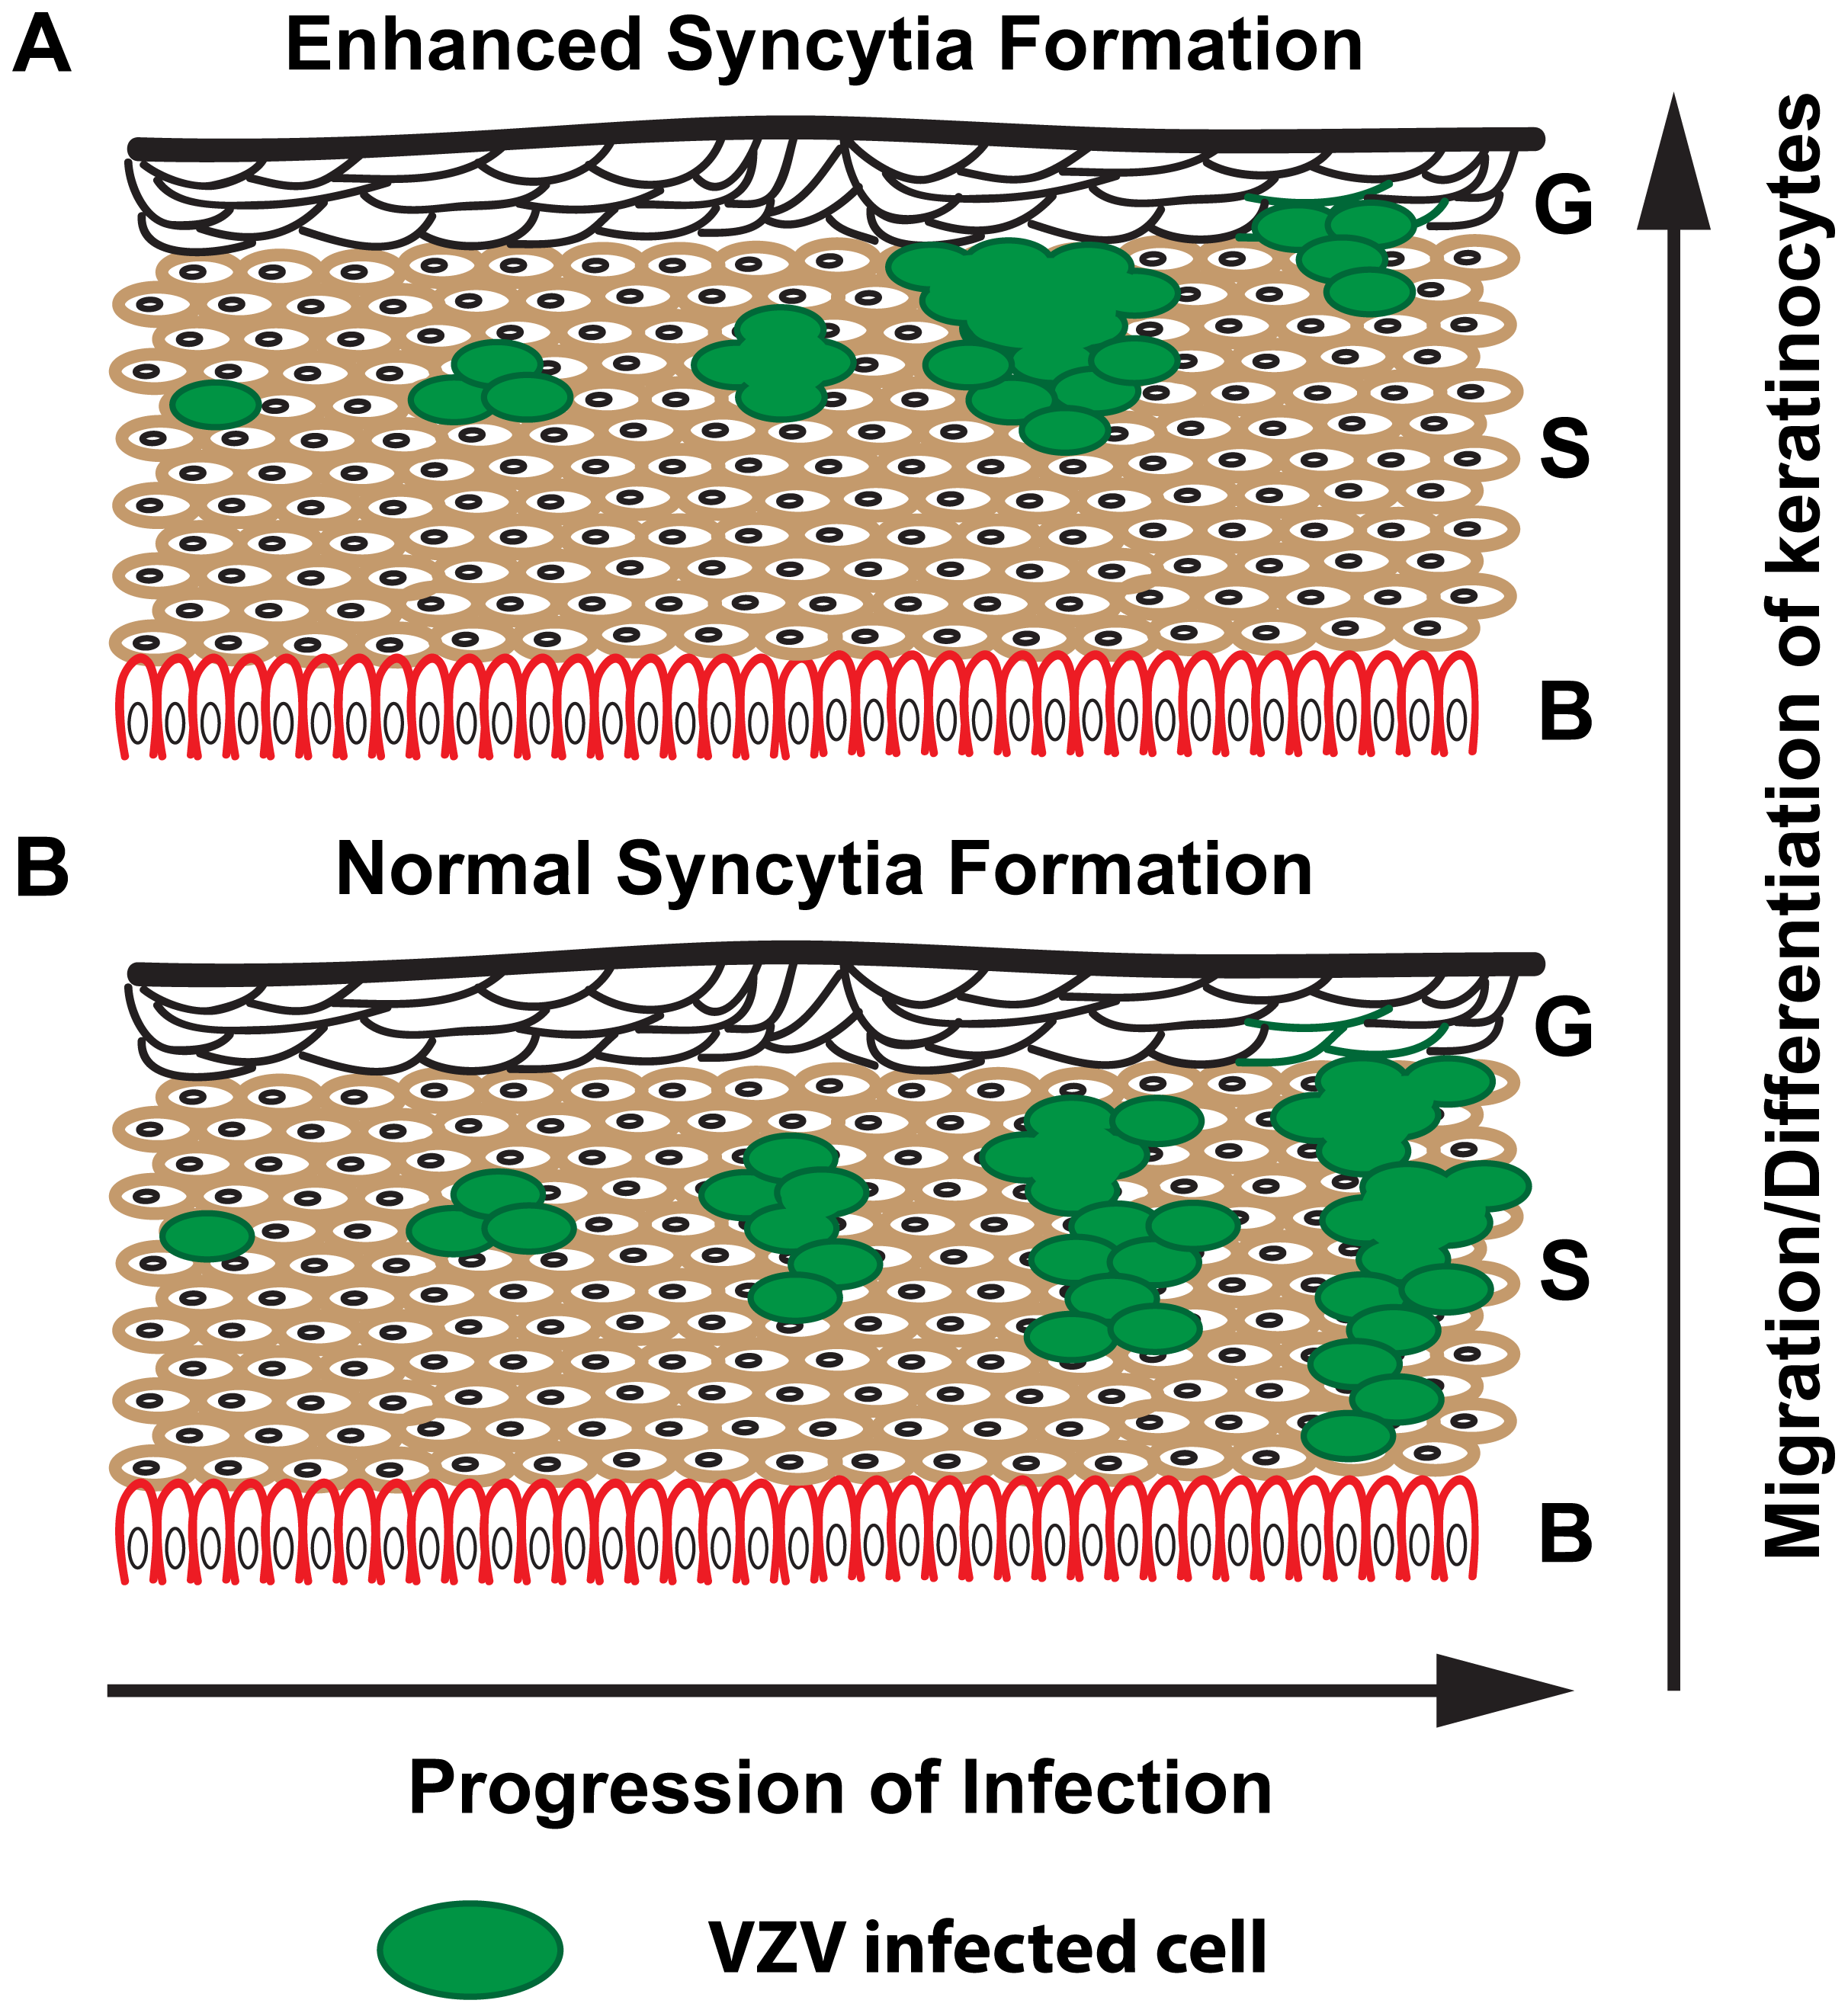 Proposed model for limited skin pathogenesis of VZV caused by exaggerated syncytia formation.